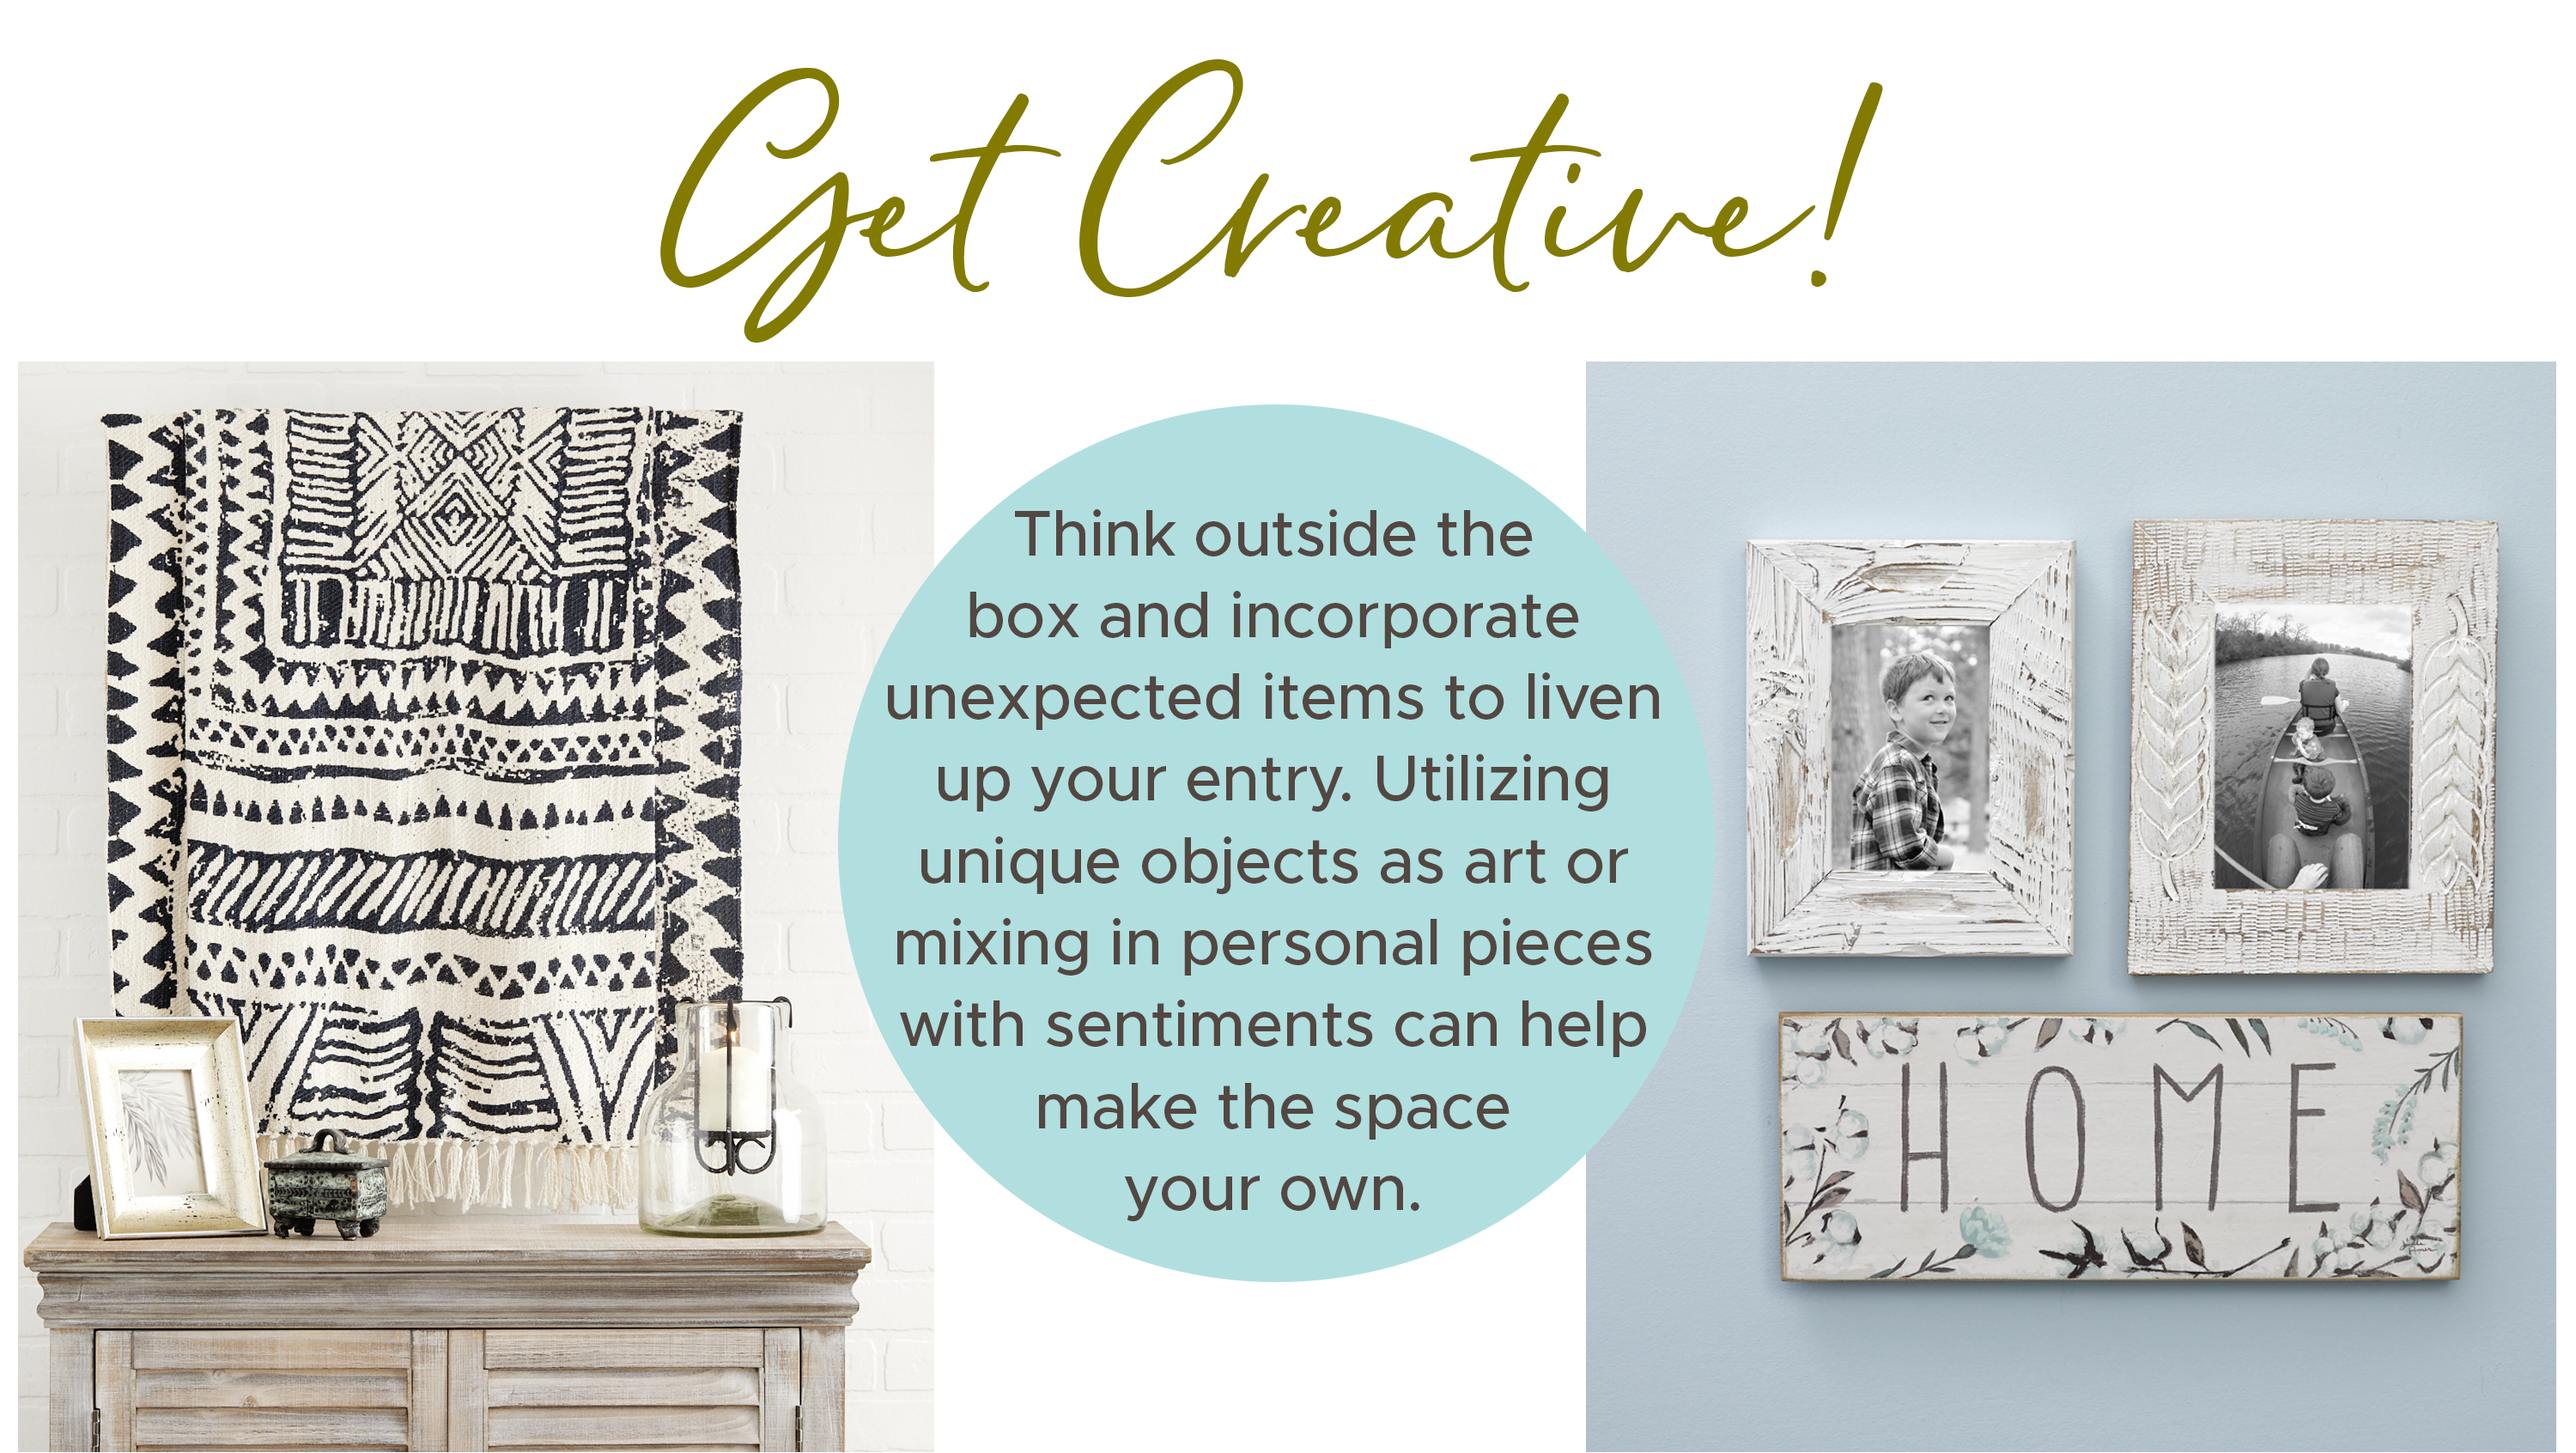 Think outside the box and incorporate unexpected items to liven up your entry. Utilizing unique objects as art or mixing in personalized pieces can help make the space your own.